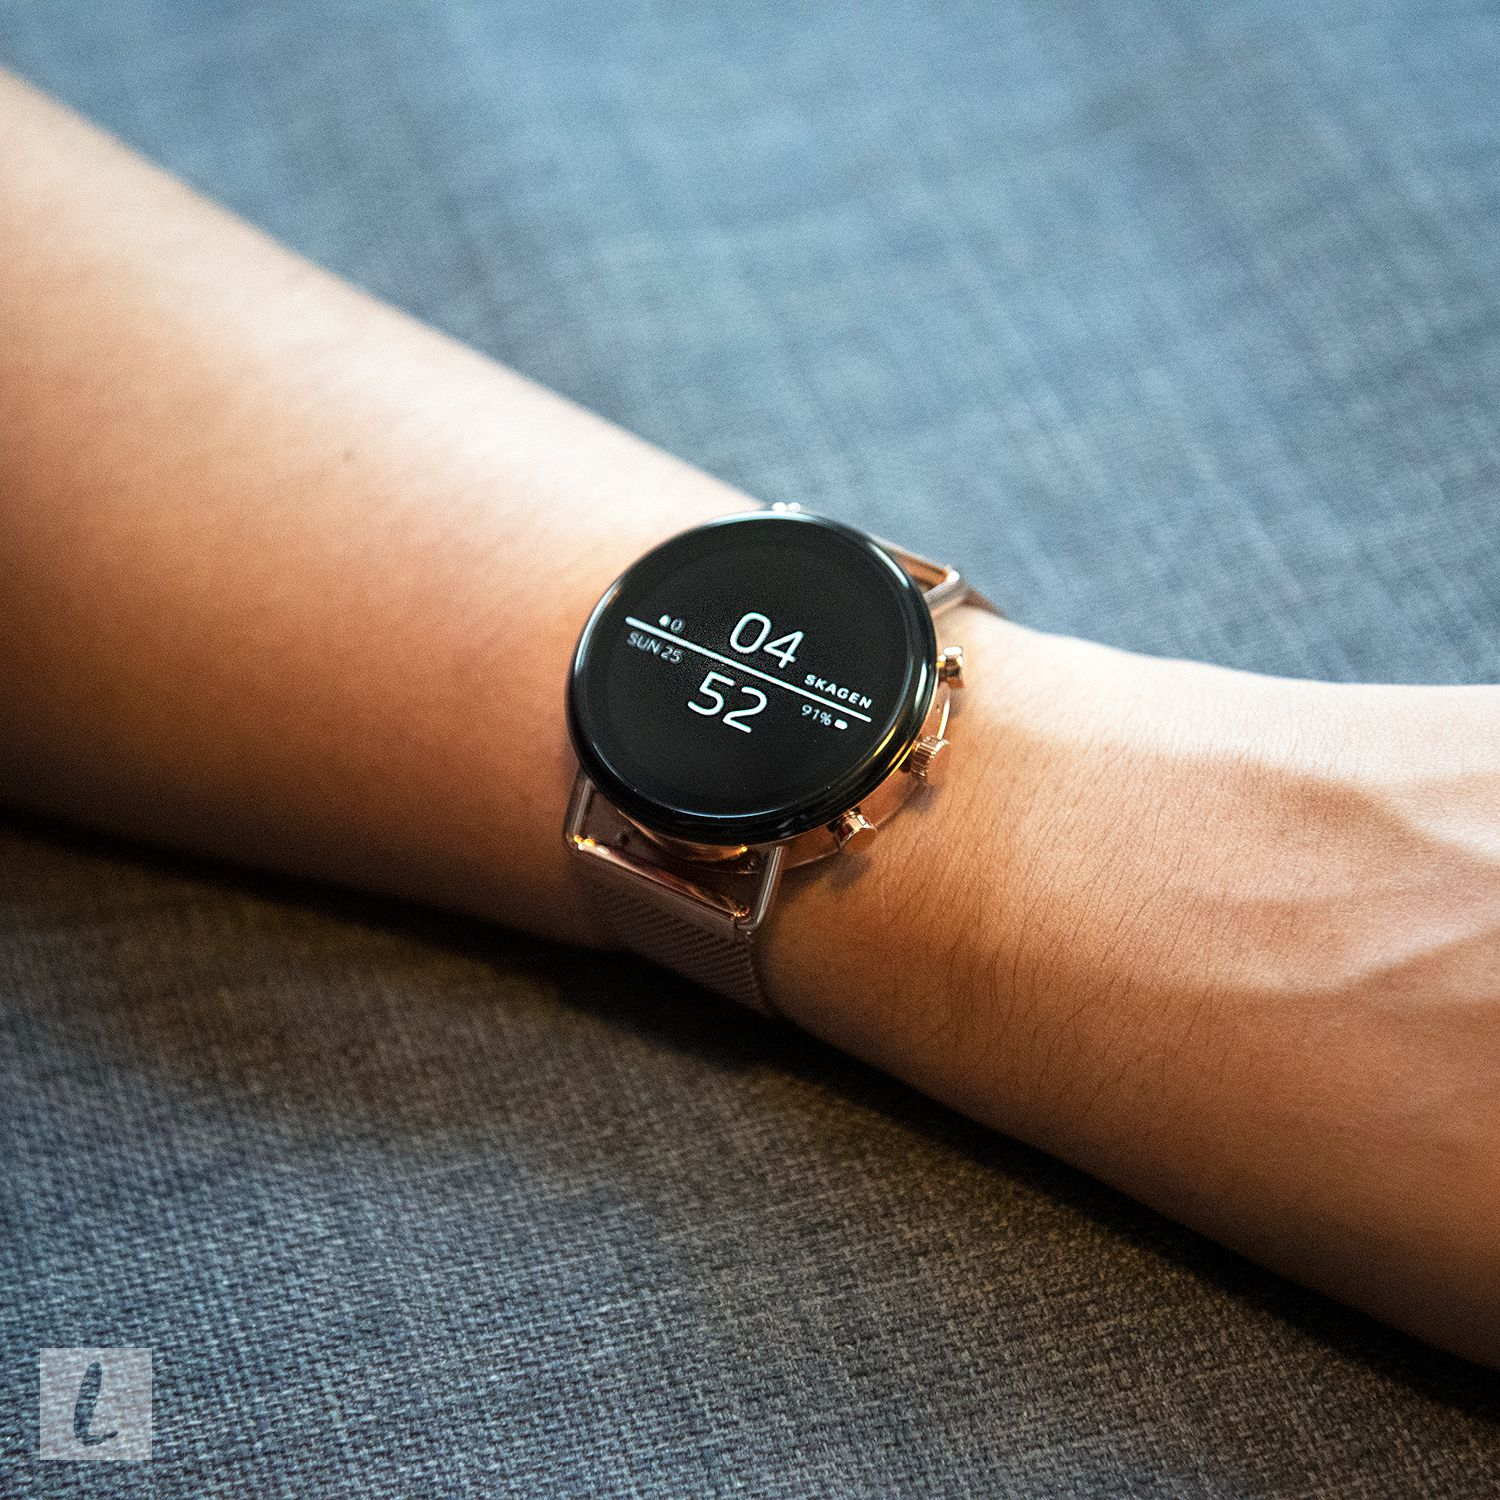 Skagen Falster 2 Review A Classy Alternative To Apple